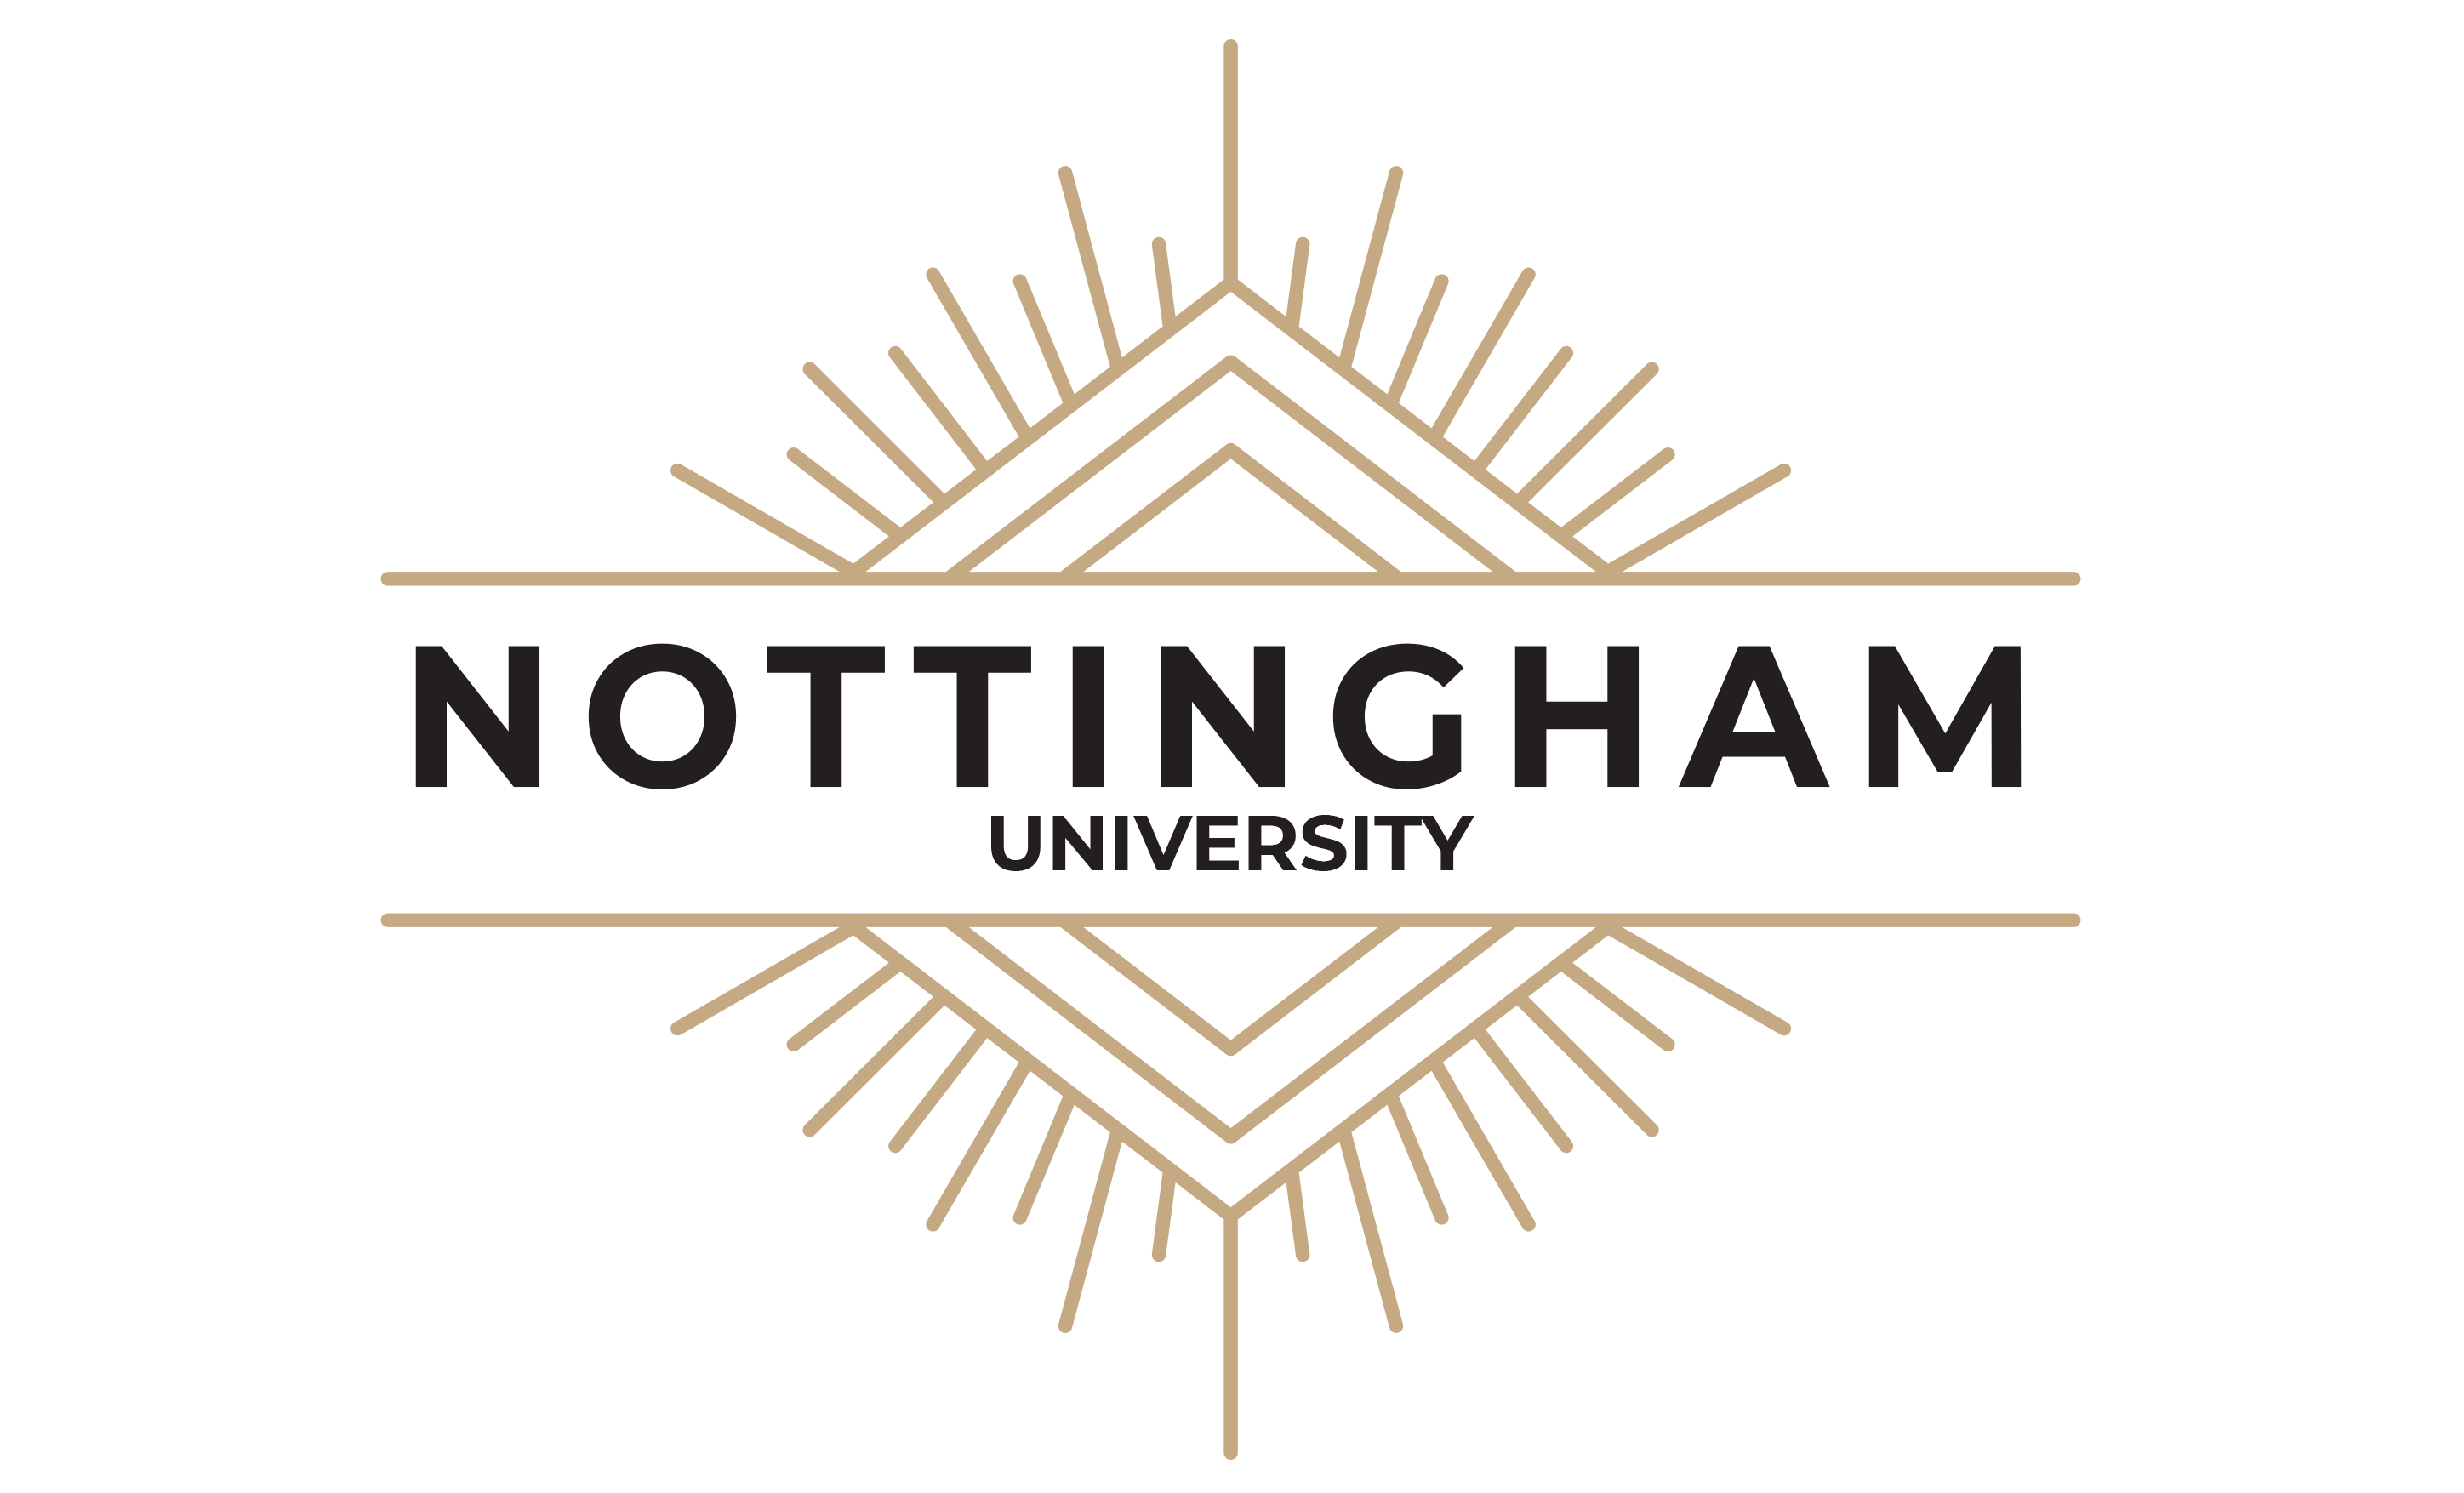 Nottingham Design 8074